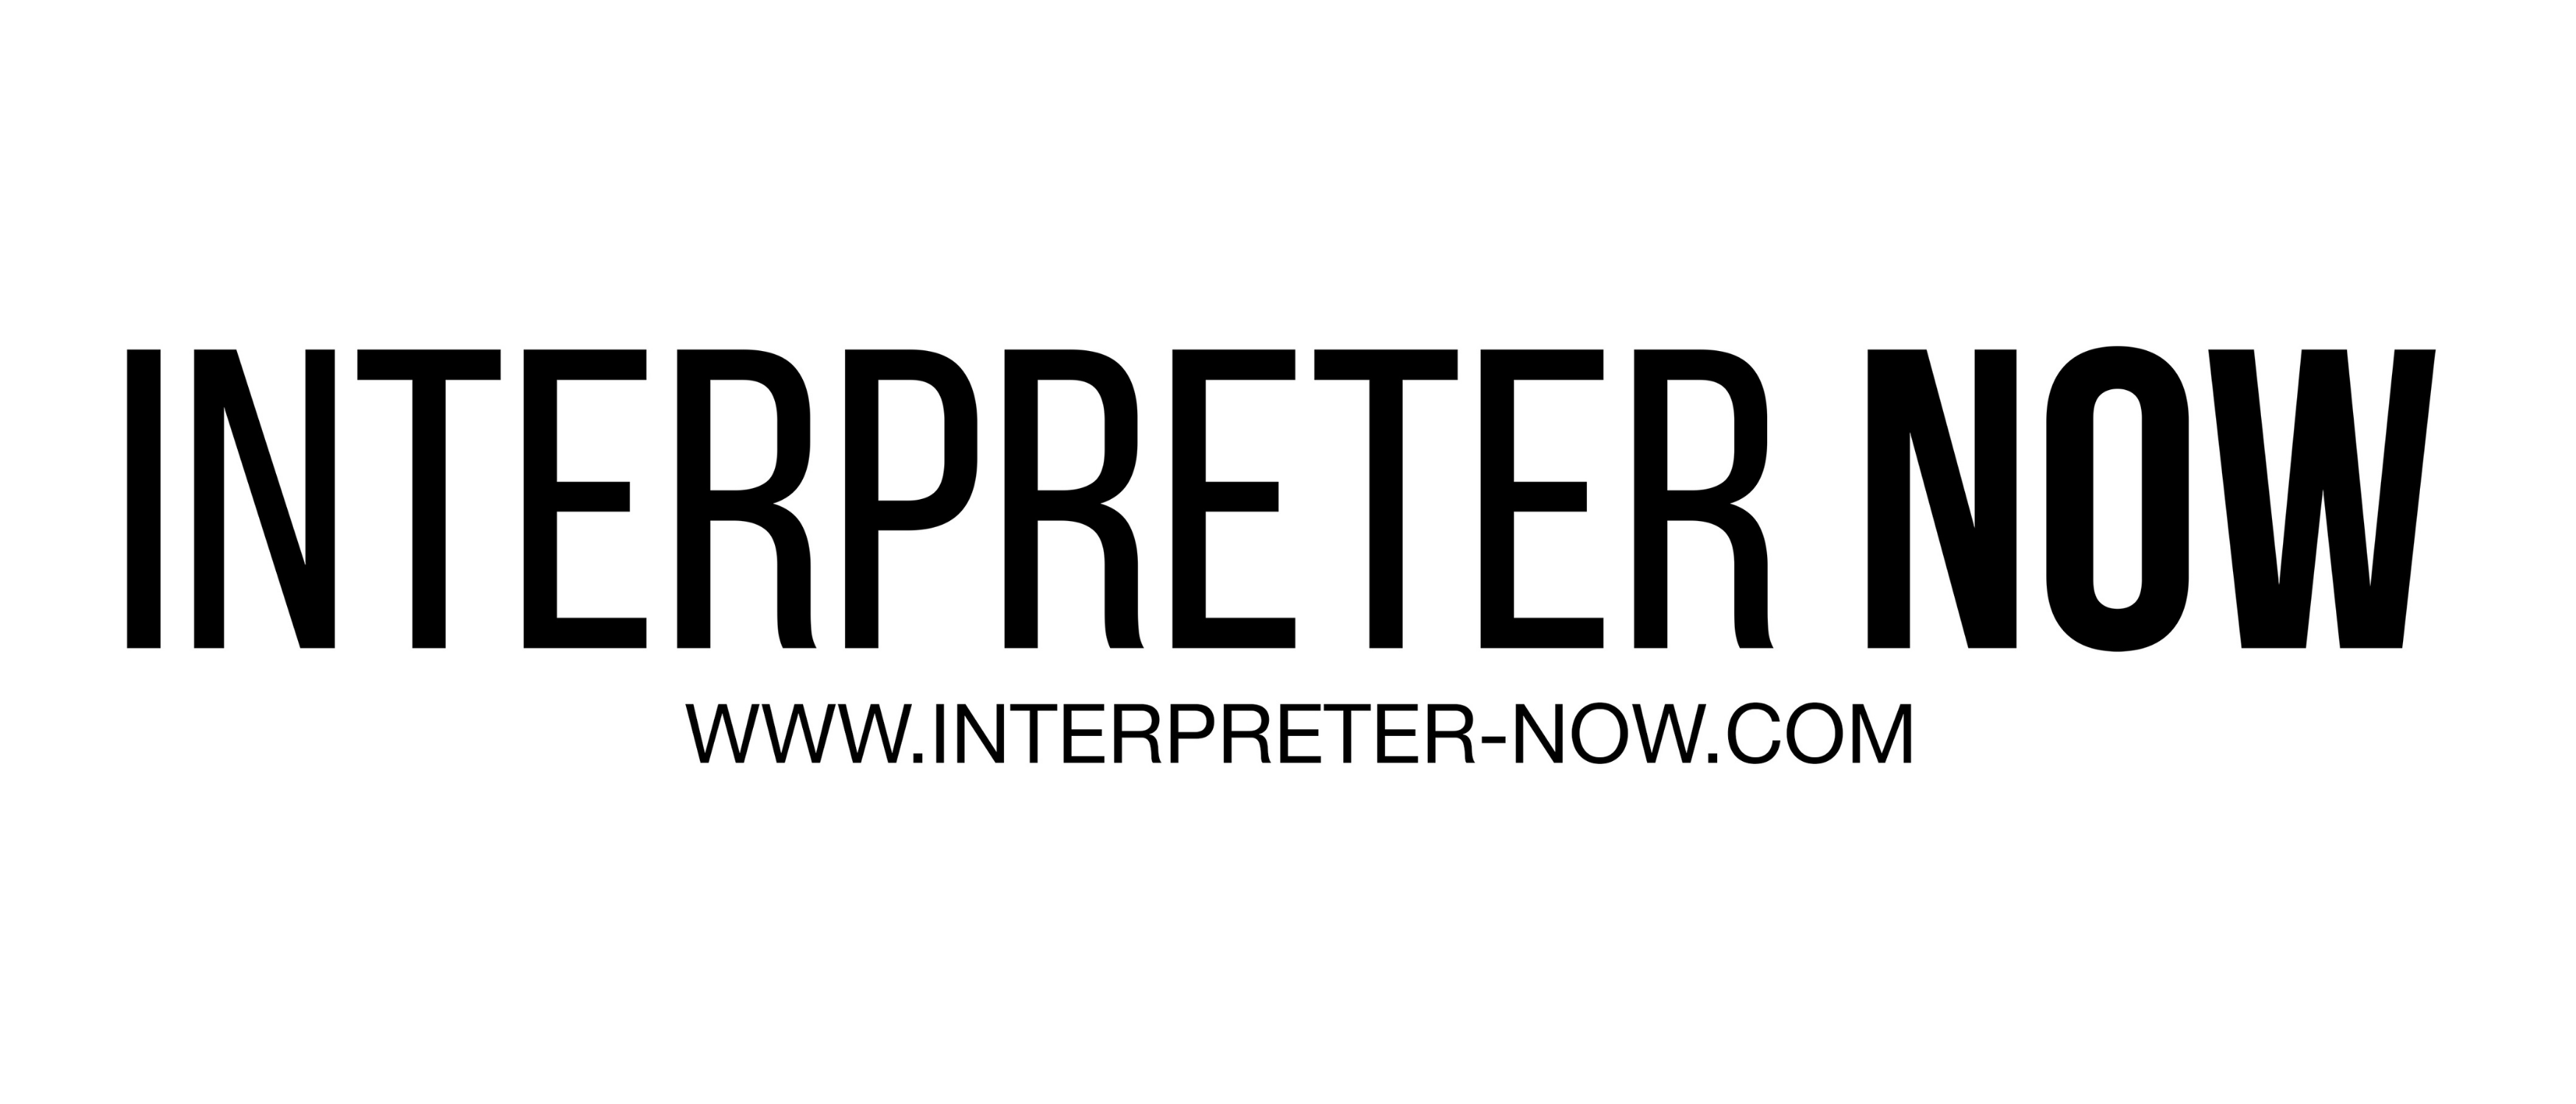 InterpreterNow